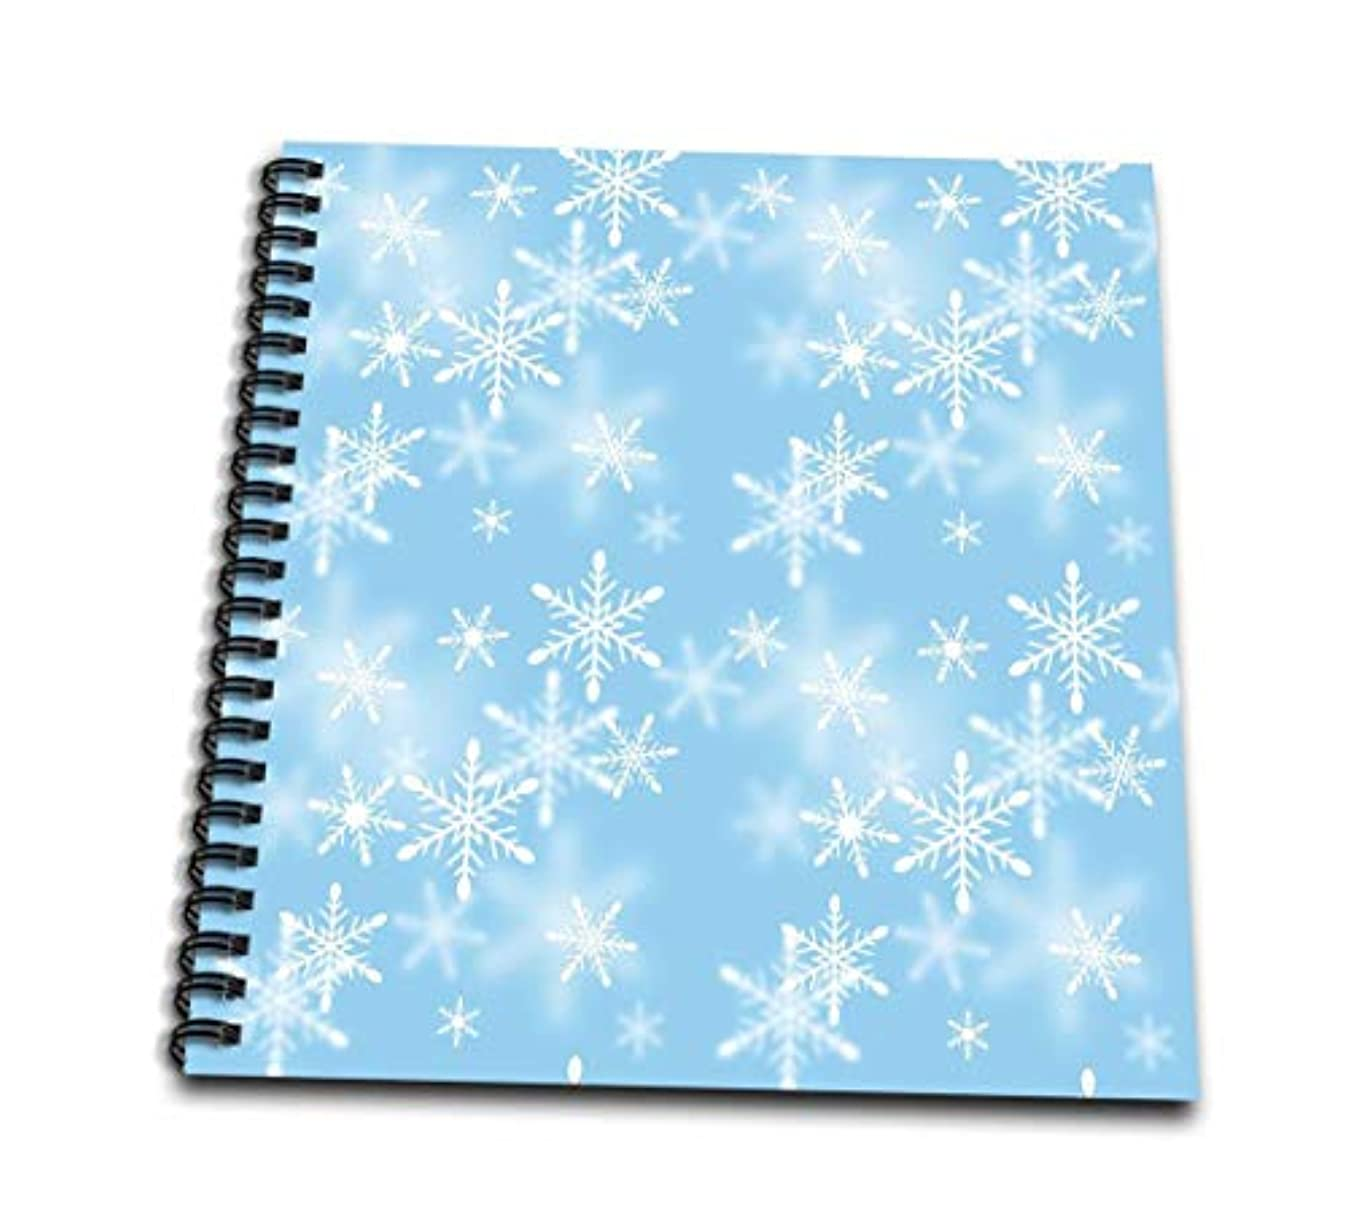 3dRose db_65567_1 Floating White Snowflakes Against A Light Blue Background-Drawing Book, 8 by 8